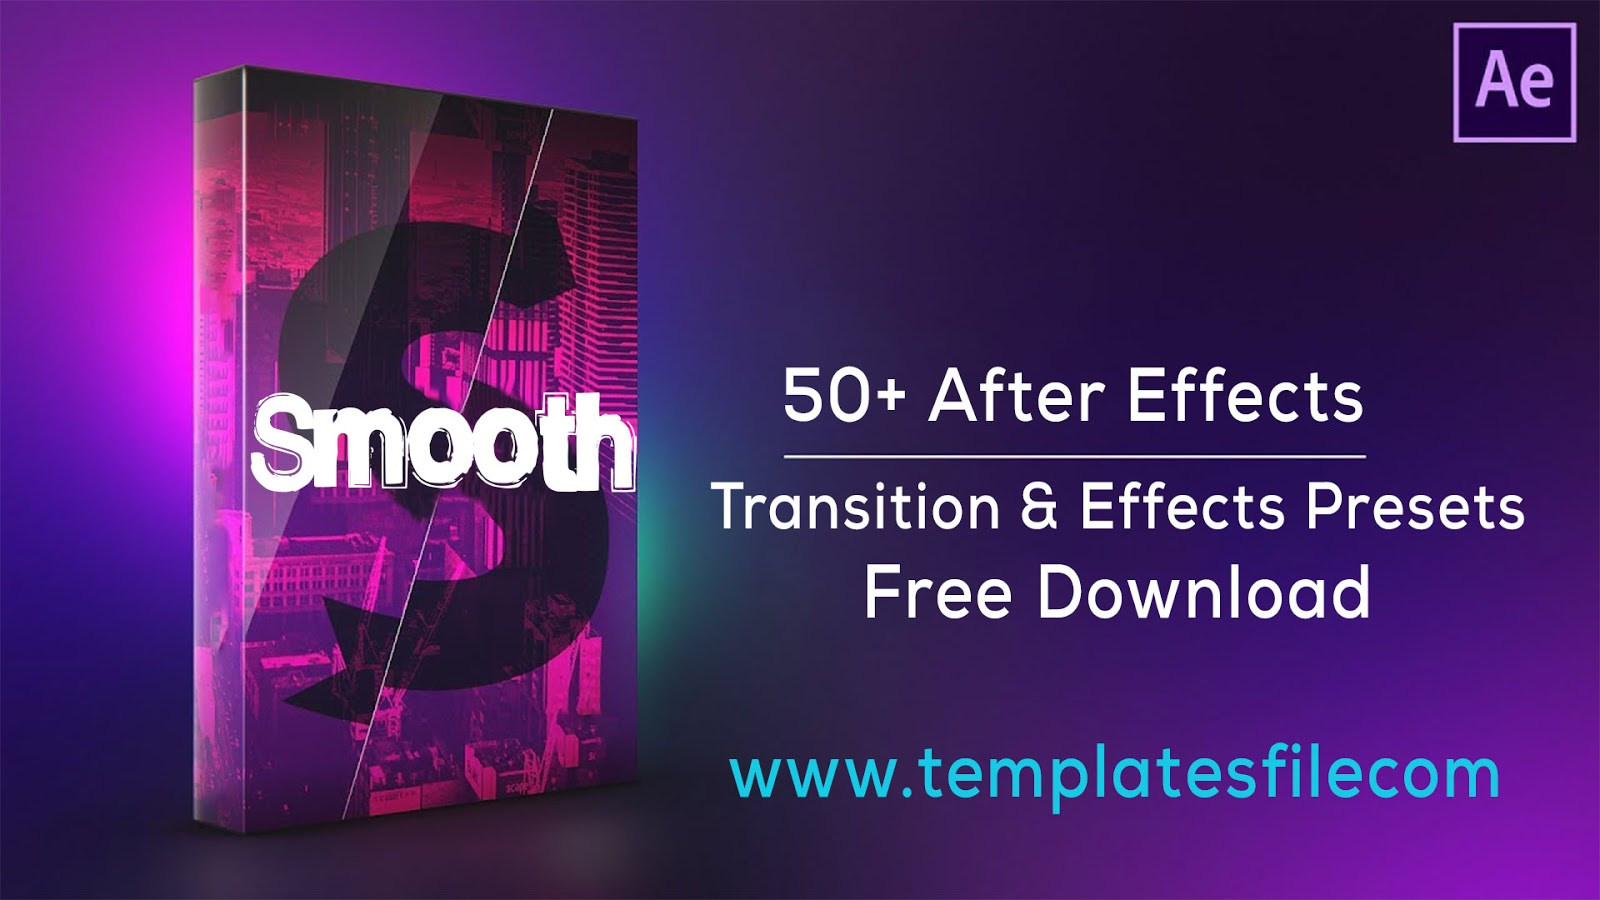 Best 50+ After Effects Smooth Transition & Effects Presets Pack Free Download 2019